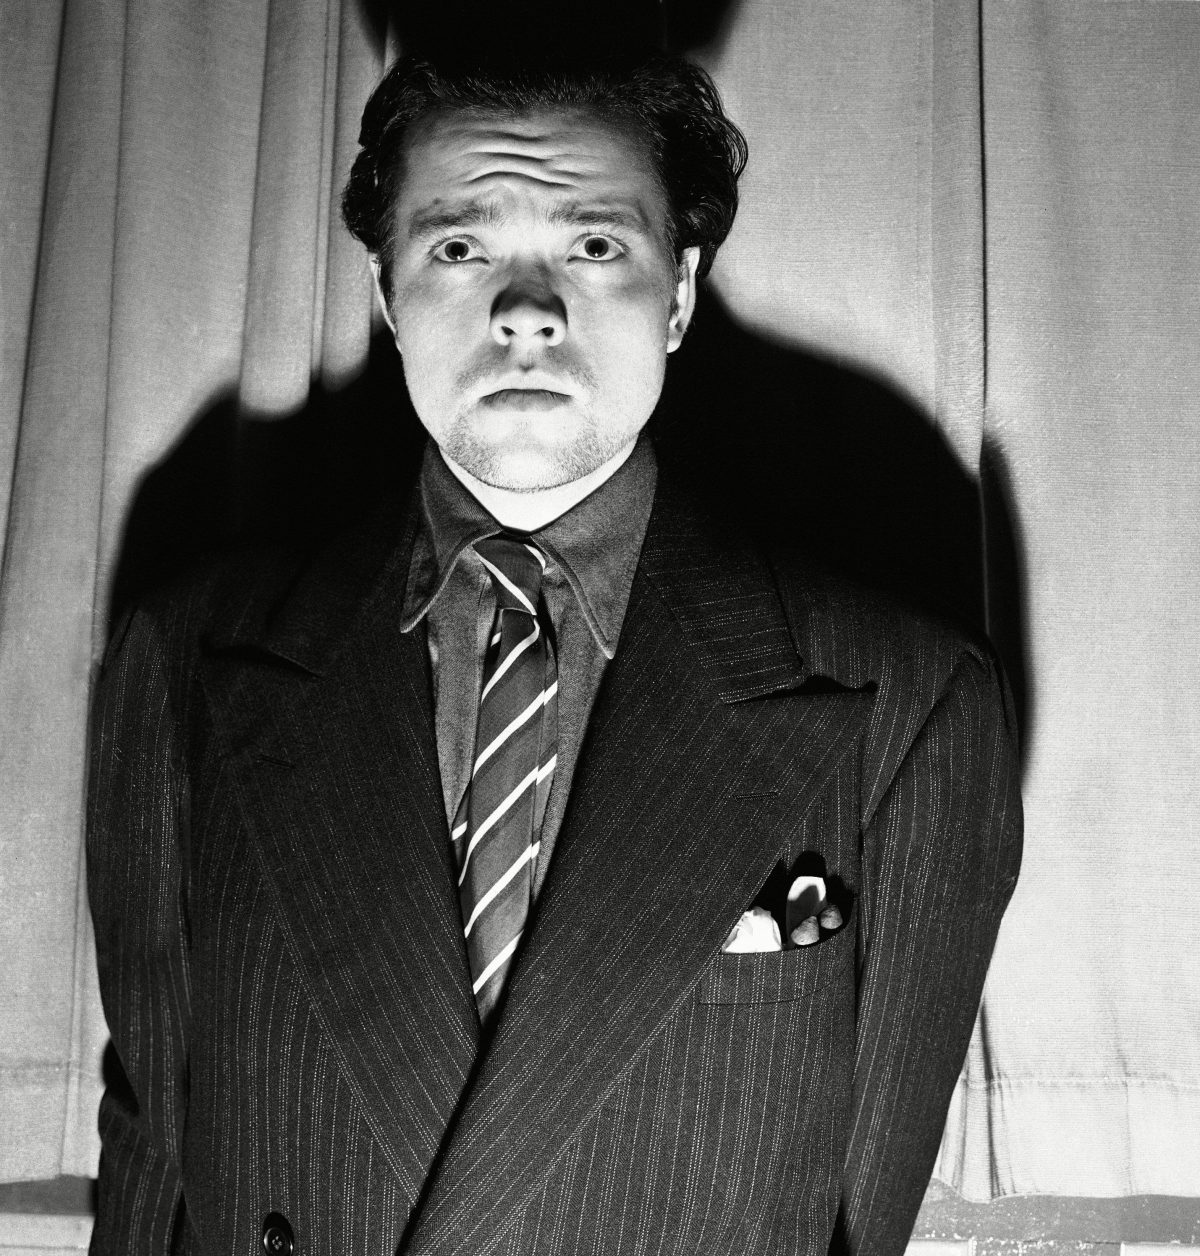 "Orson Welles, radio and stage actor, whose dramatization, of an H. G. Wells novel titled ""War of the Worlds"" which related the ""invasion"" of New Jersey by a horde of men from mars was interpreted by listeners as an actual news broadcast of the events supposed to presume the end of the world. Panicked listeners fled into streets to get away from the invaders: radio and police stations were swamped with calls all over the country - the broadcast was nation - wide (CBS) - and in Newark 15 persons were treated for shock after they rushed out of their homes to escape what appeared to be certain doom. Welles is after the broadcast Orson Welles"